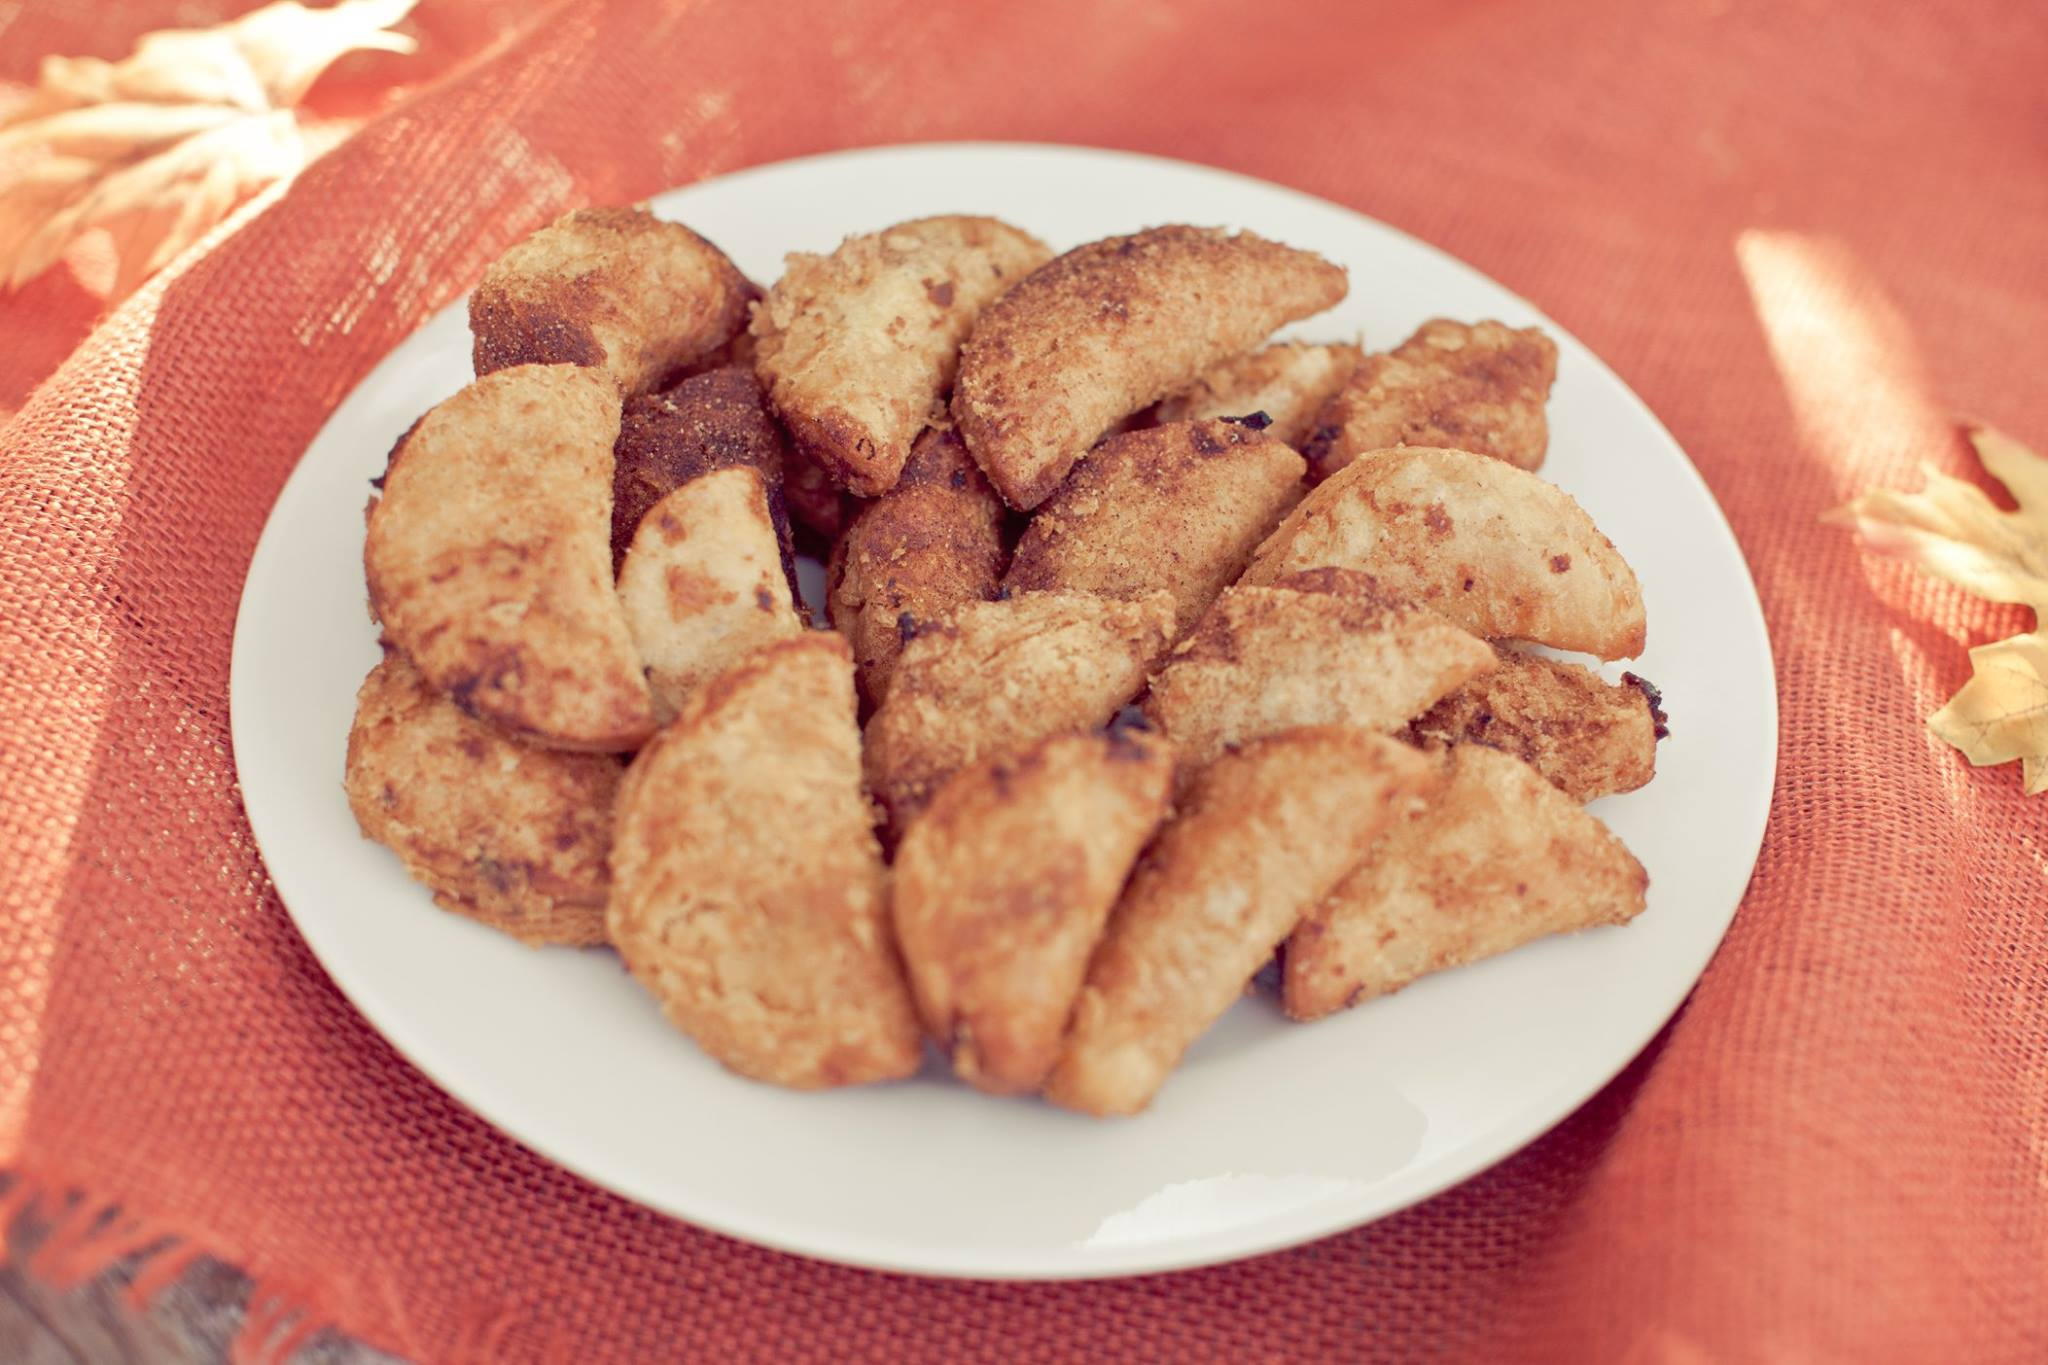 Manly A Crock Pot How To Make Fried Apples Pies Friedapplepies Mini Fried Apple Pies Sourn Savorings How To Make Fried Apples nice food How To Make Fried Apples